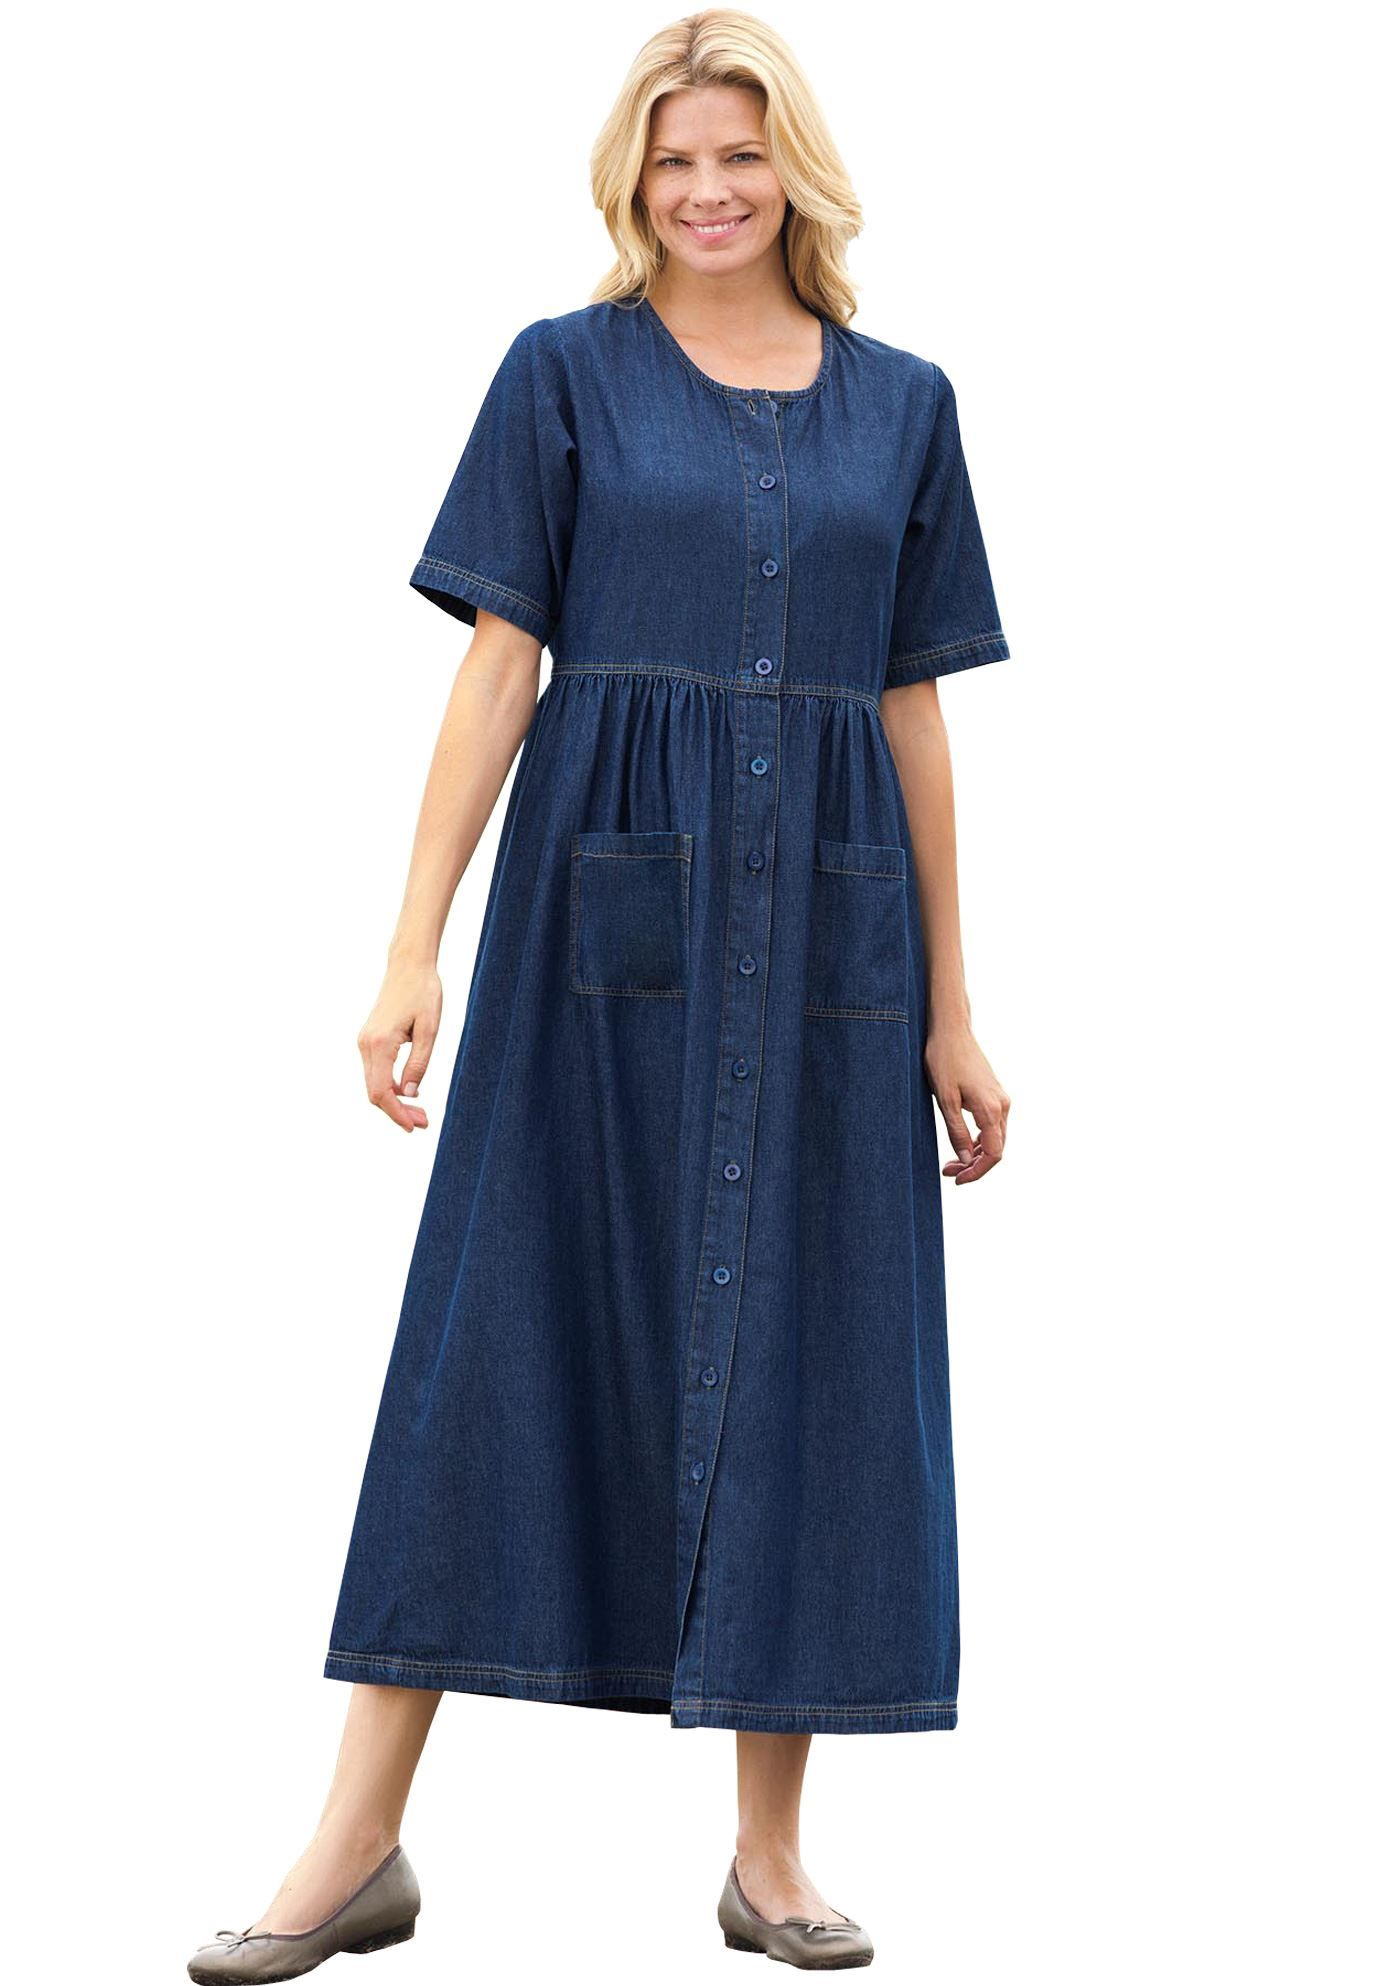 Plus size denim dresses and skirts